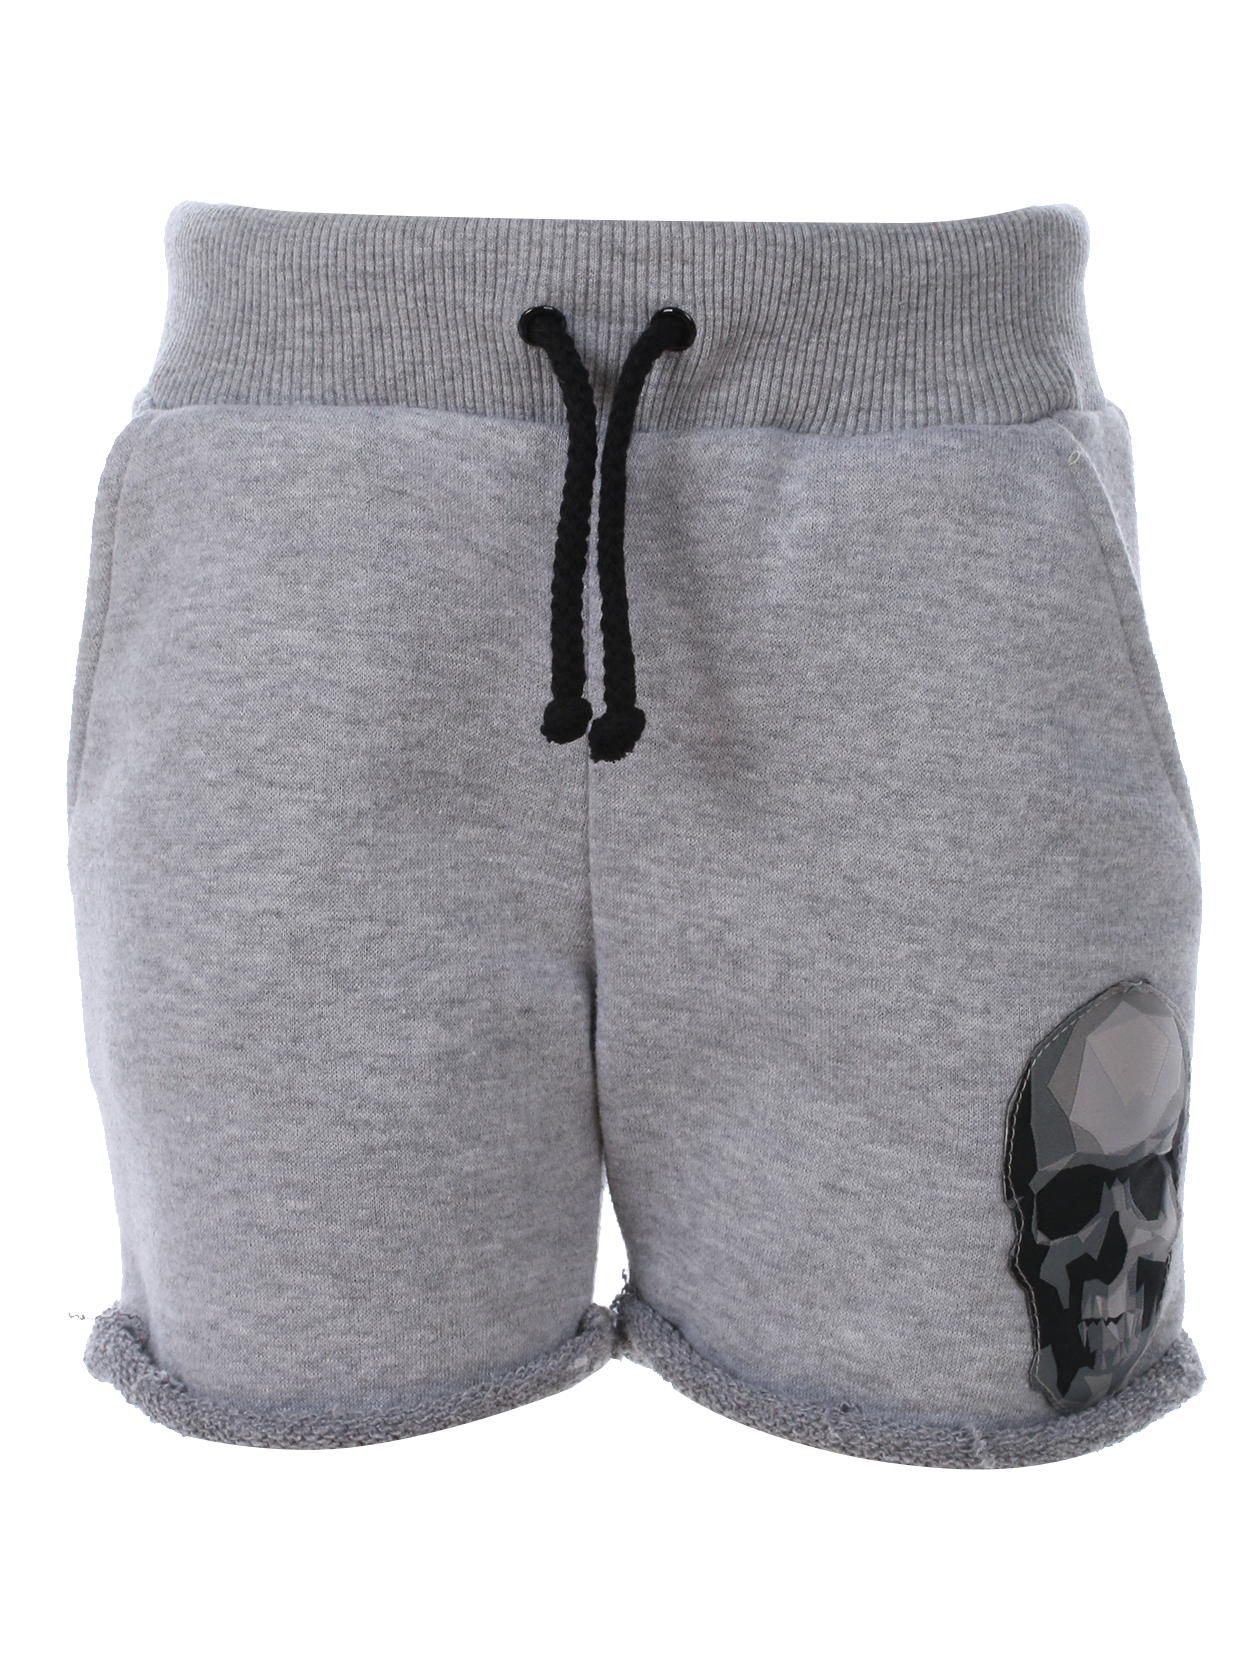 Kids shorts SkullKids shorts by Black Star Wear. Knee length, lacing, regular waist, side pockets, raw cut. 100% natural cotton. Low poly skull patch on the left side. Avaliable in gray.<br><br>size: 1-2 years<br>color: Grey<br>gender: unisex